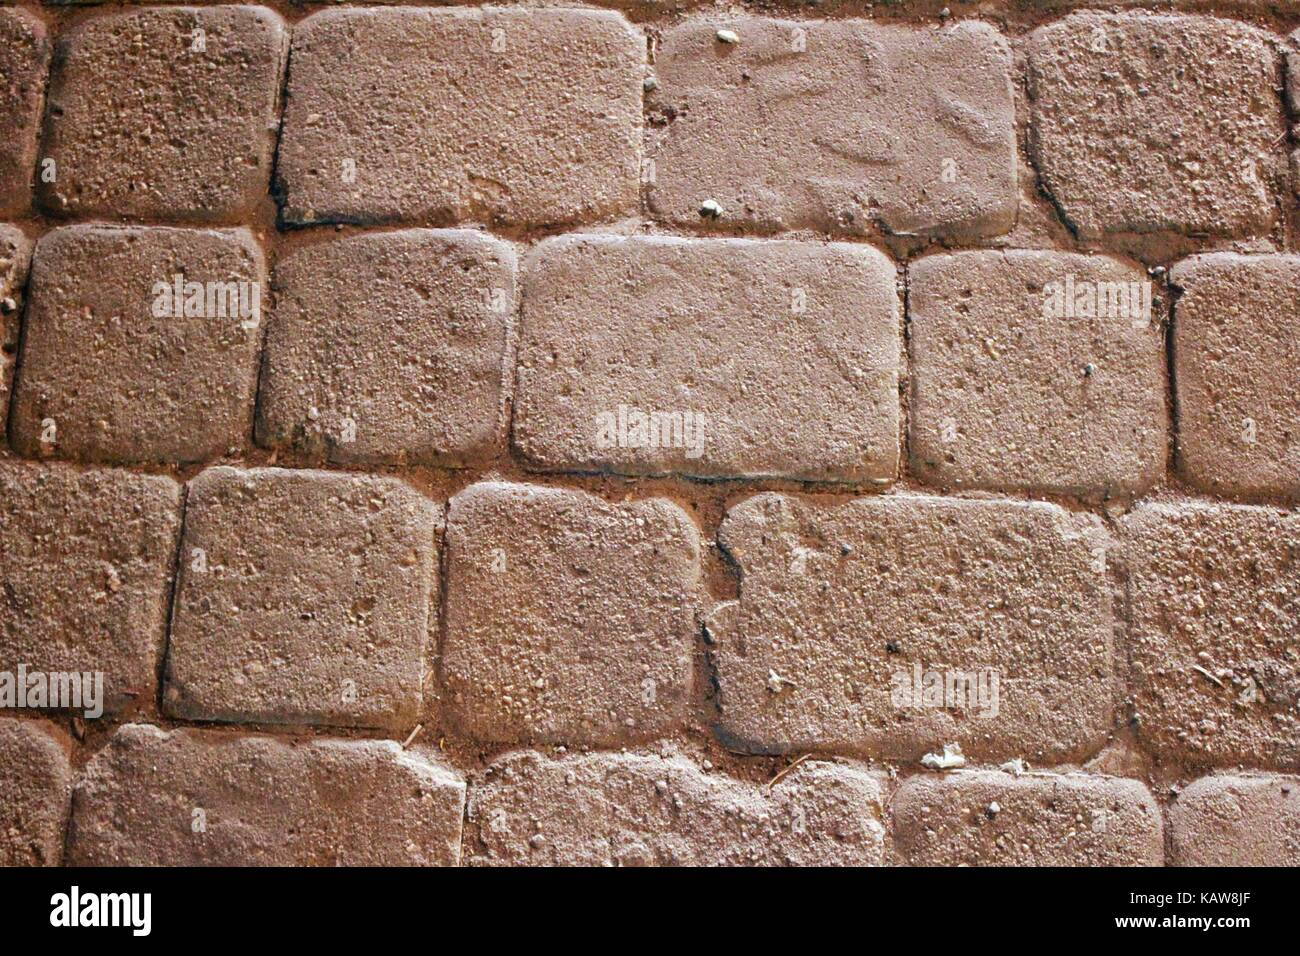 Fragment of the masonry of the Red Tower in Alanya (Turkey), which can be used in graphic design. - Stock Image